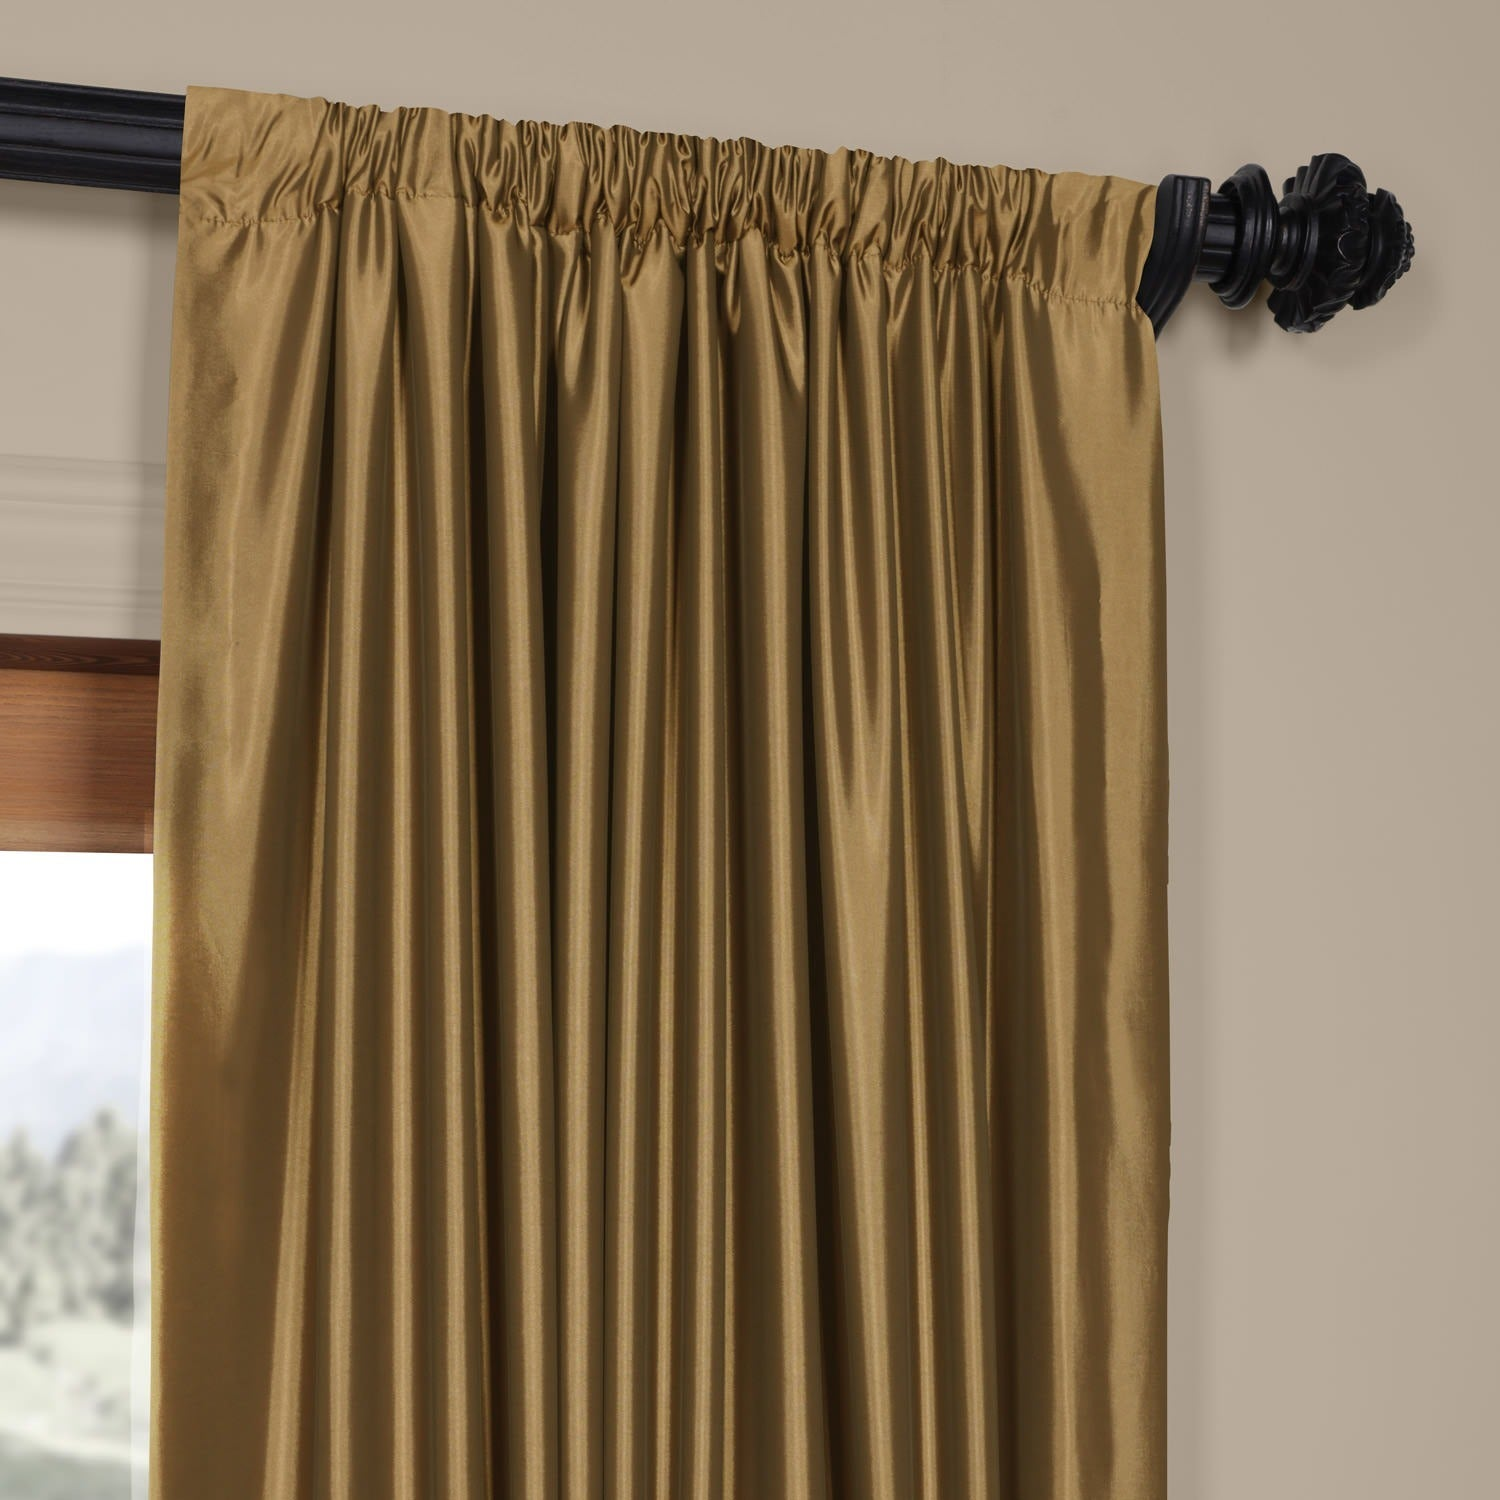 panels large sequin burgundy metal drapes bl metallic loading size red gold and black of curtains zoom full curtain